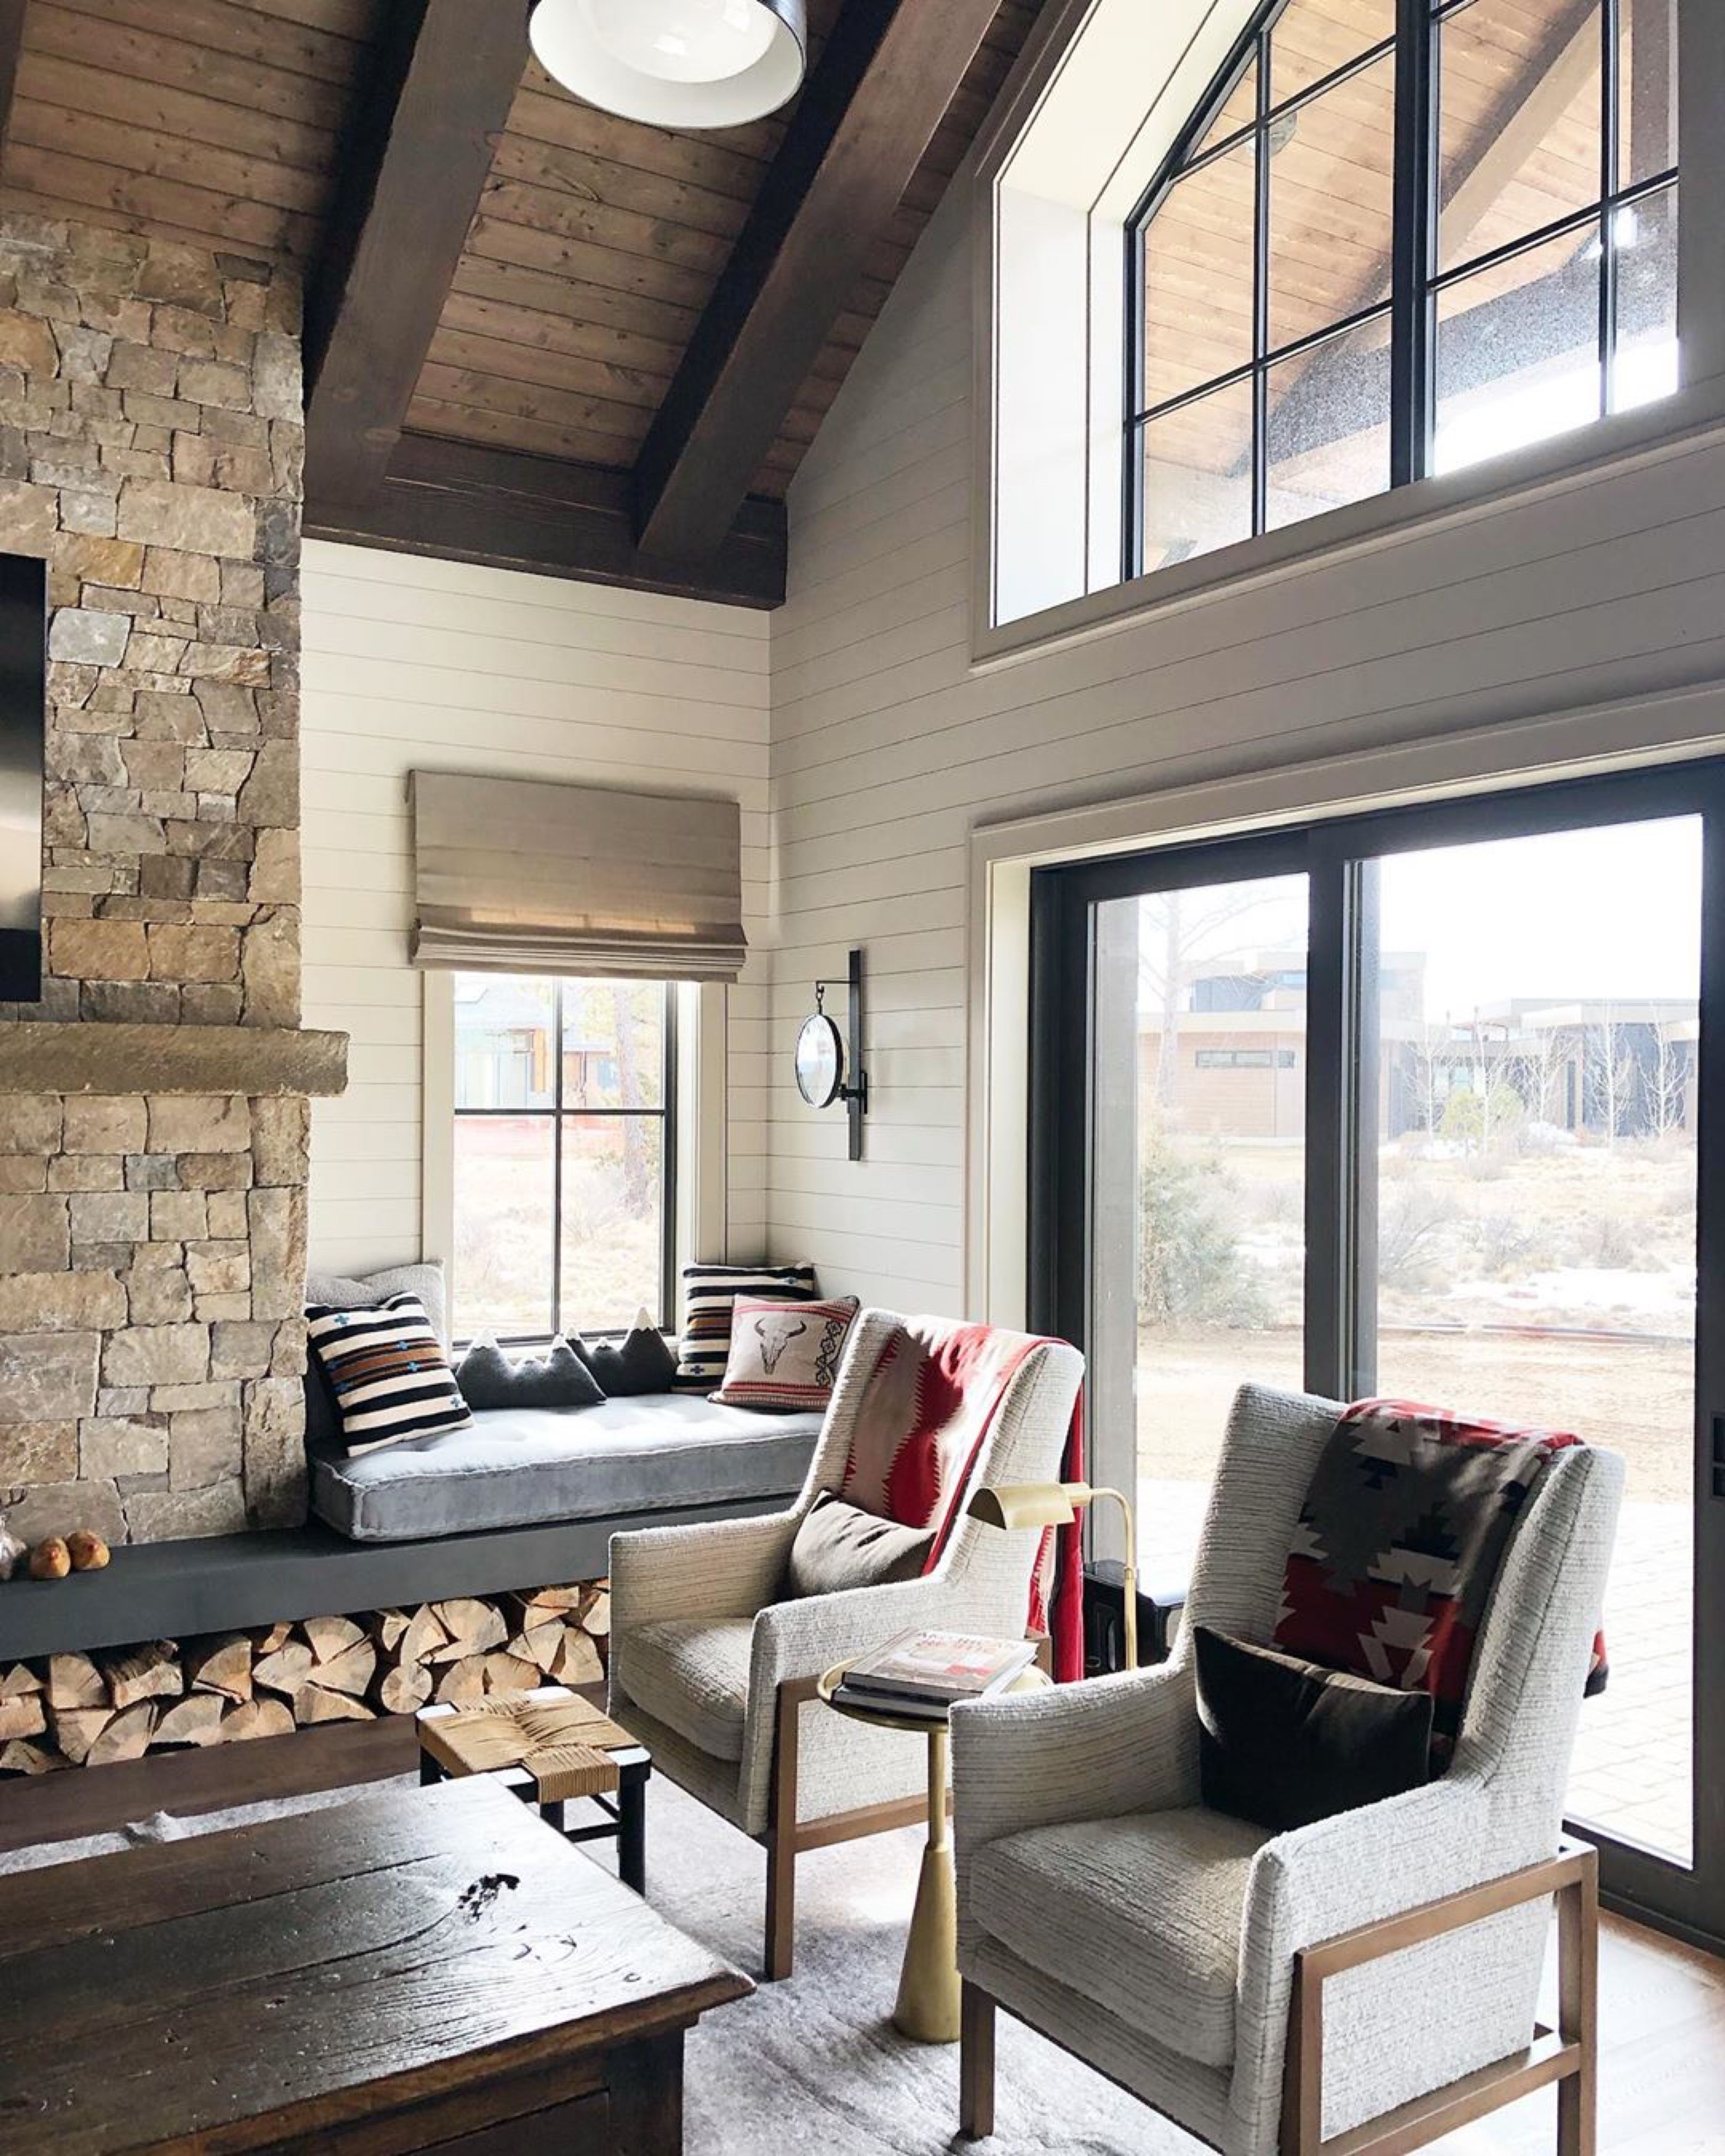 Rustic Living Room Ideas In 2020 Rustic Living Room Living Room Windows Great Rooms #rustic #living #room #images